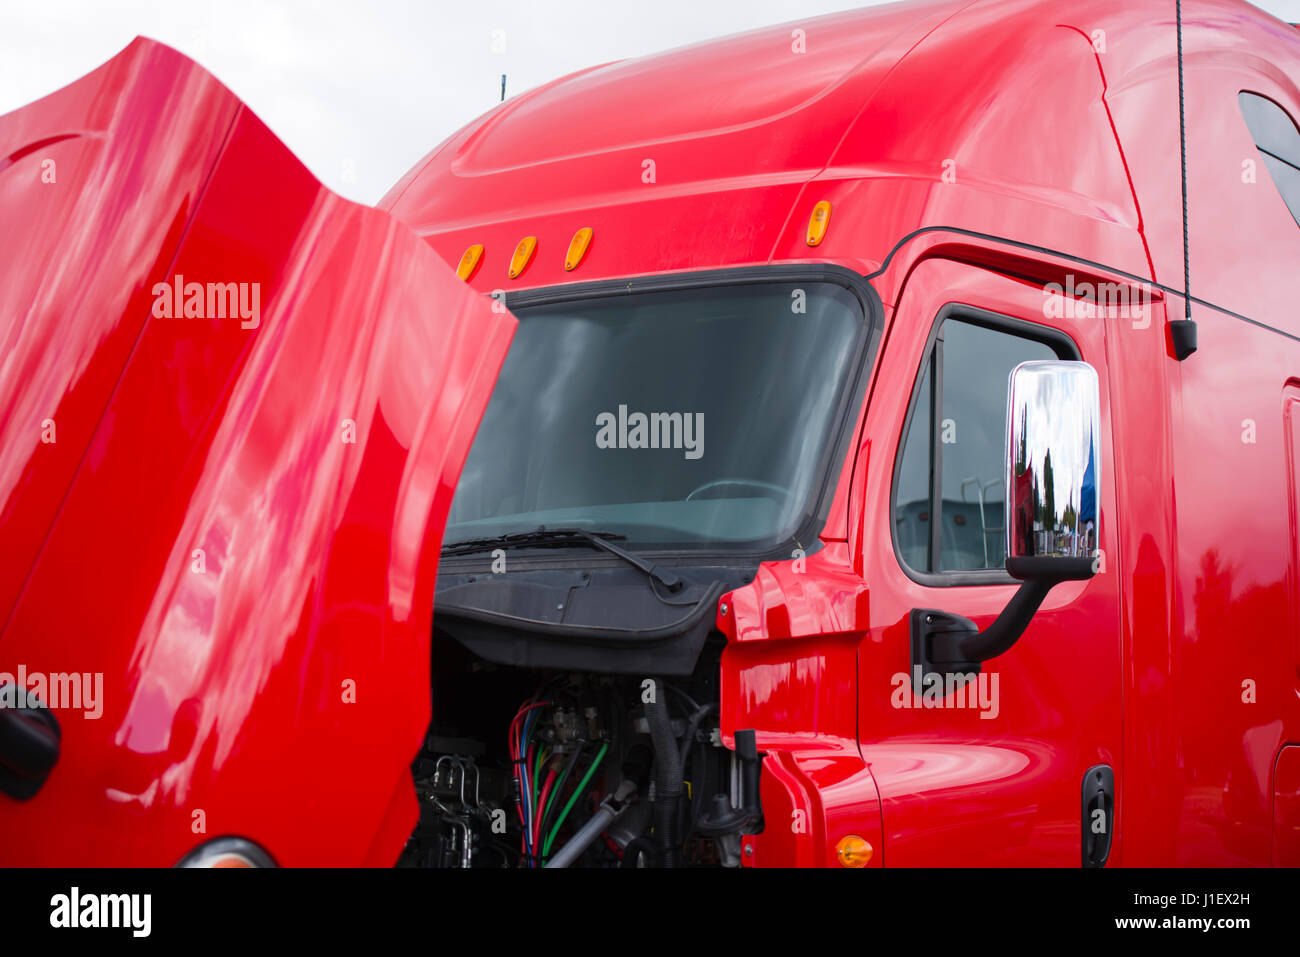 A Bundle Of Wires Stock Photos Images Alamy 9 Pin Deutch Connector On Semi Trucks Huge Professional Bright Shiny Modern Red Big Rig Truck With High Roof Cab And